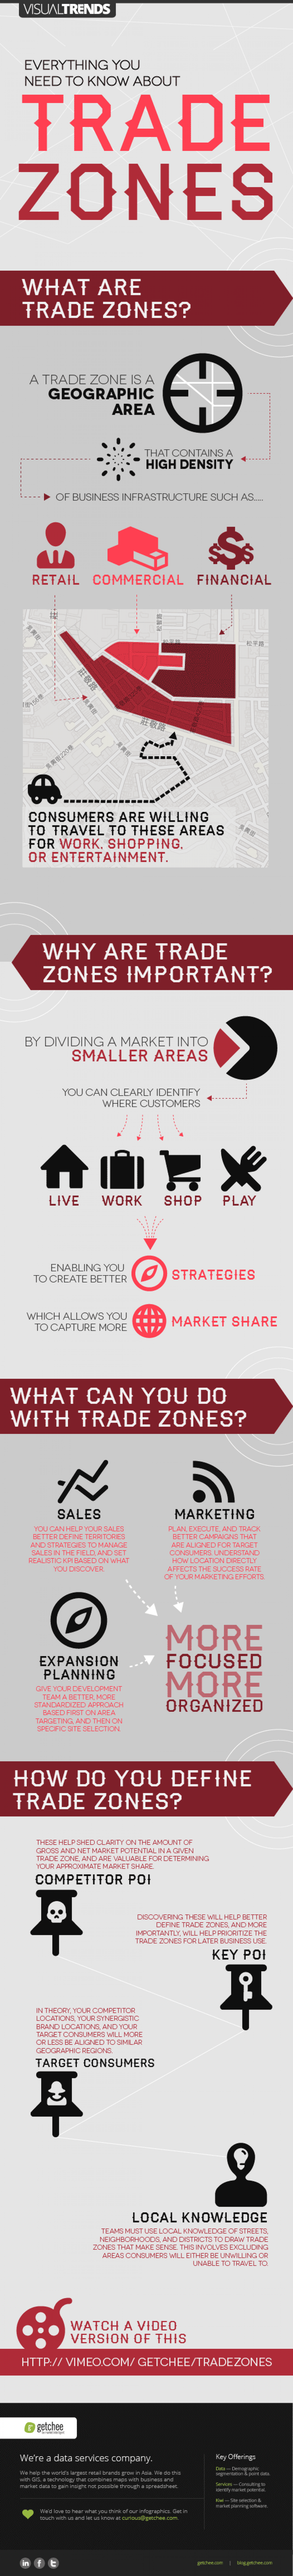 Everything You Need to Know About Trade Zones Infographic